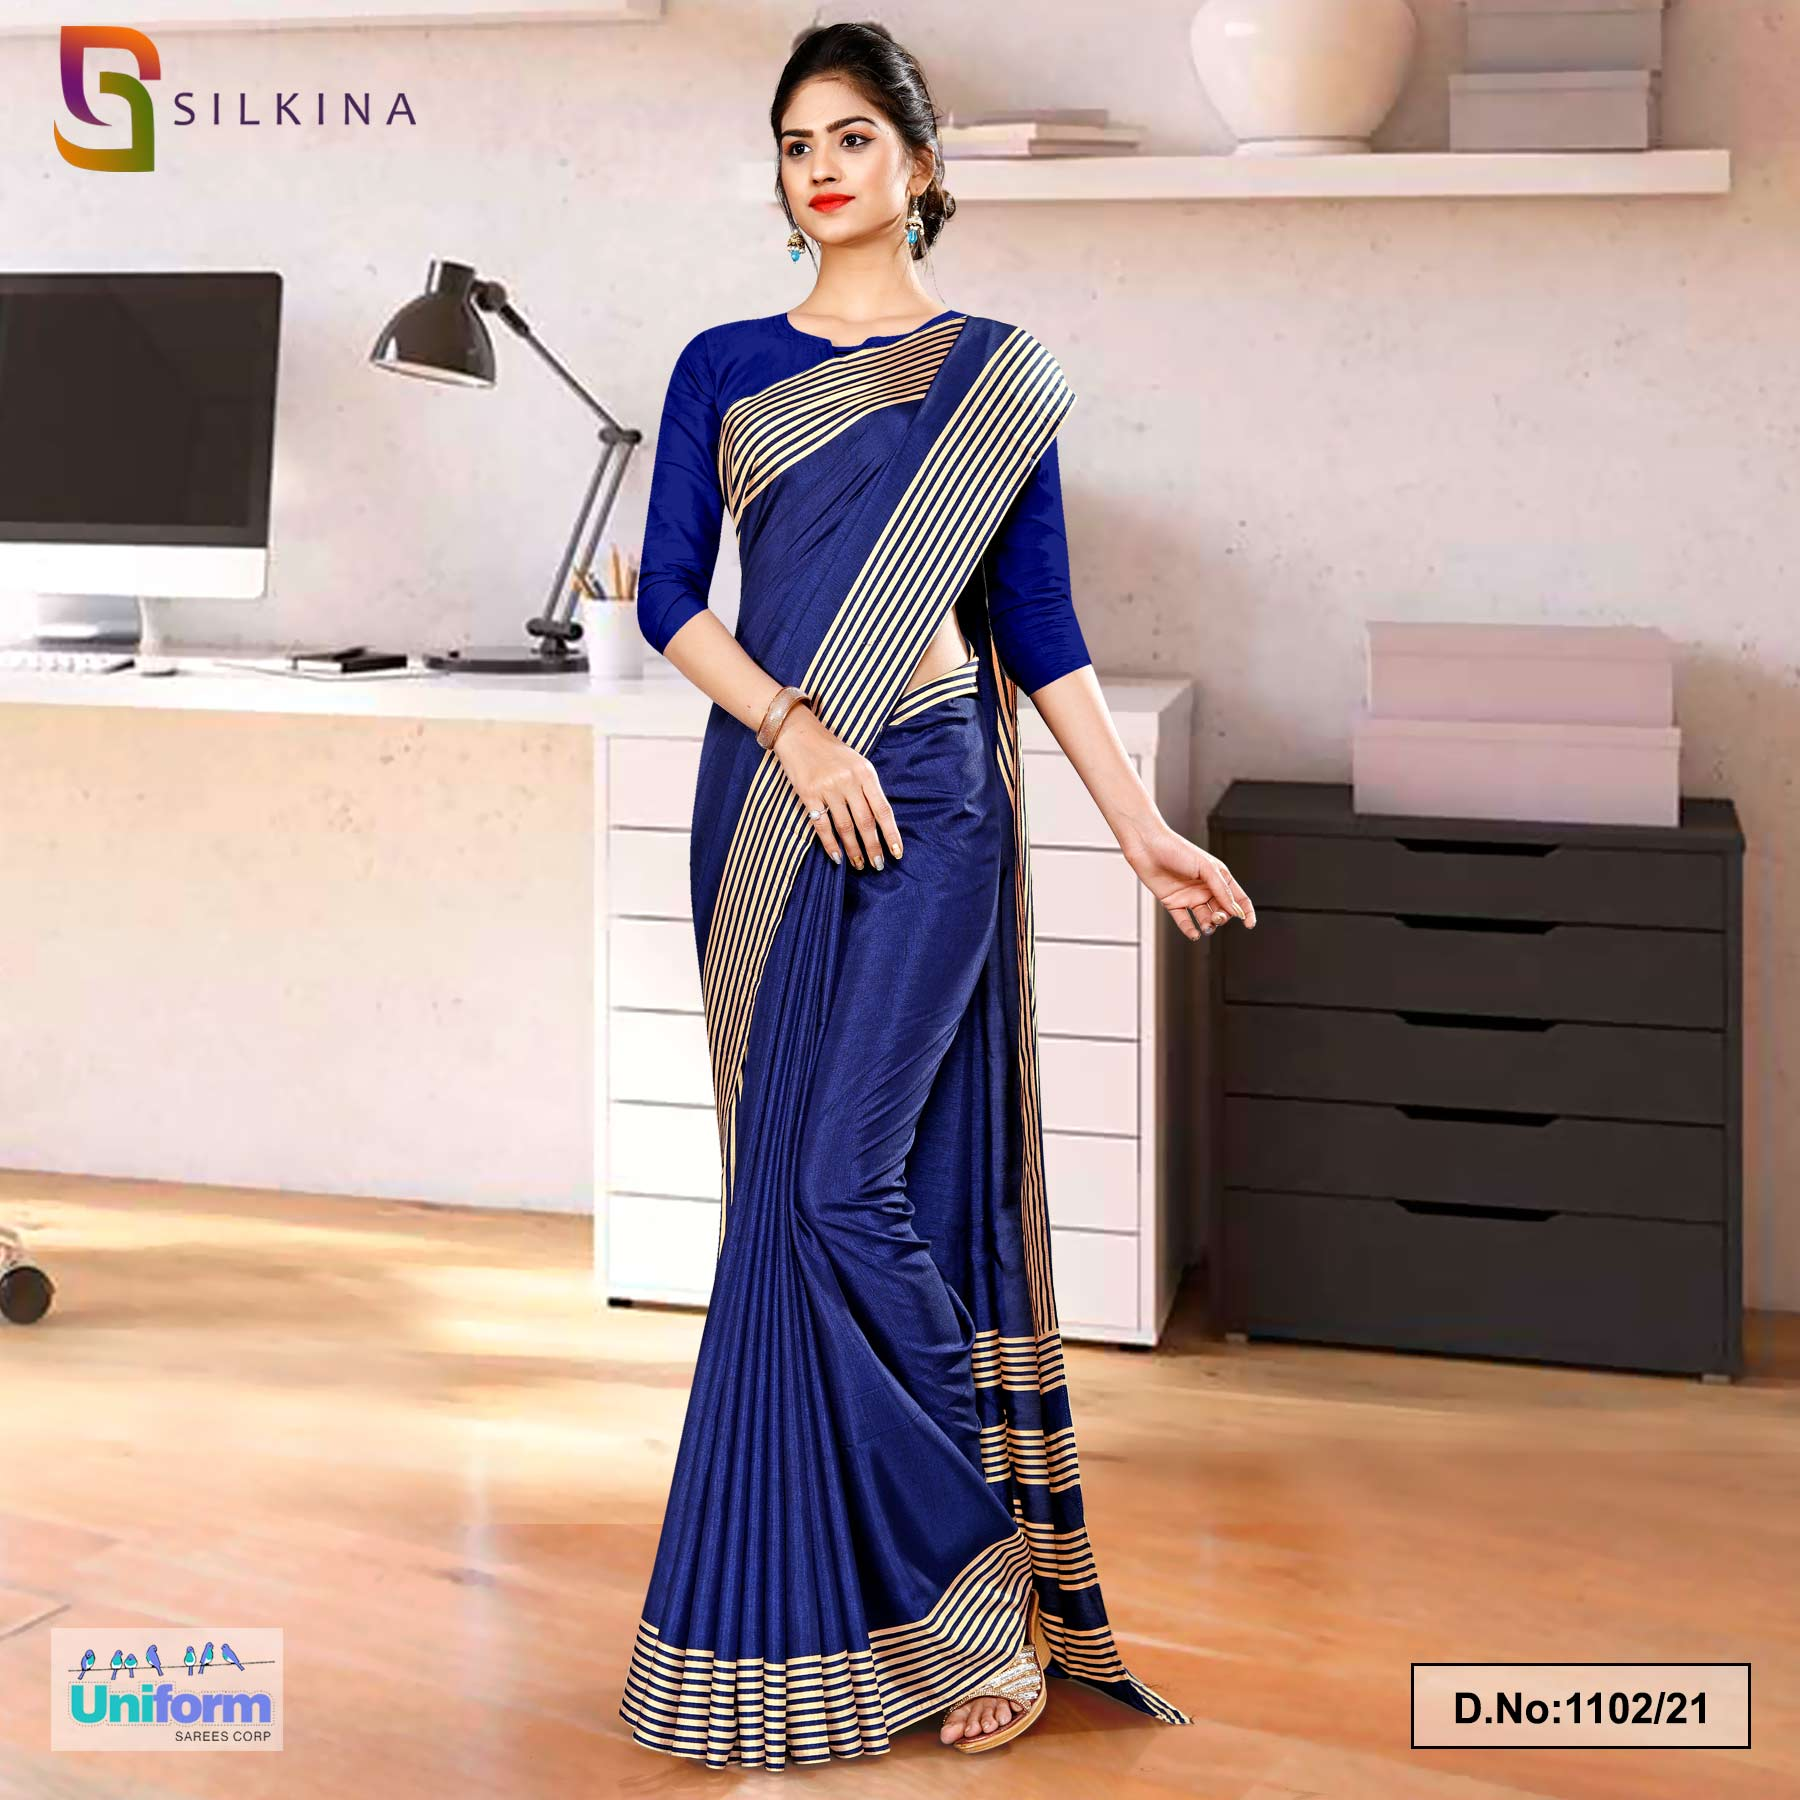 Navy Blue Plain Border Premium Polycotton Raw Silk Saree for Teachers Uniform Sarees